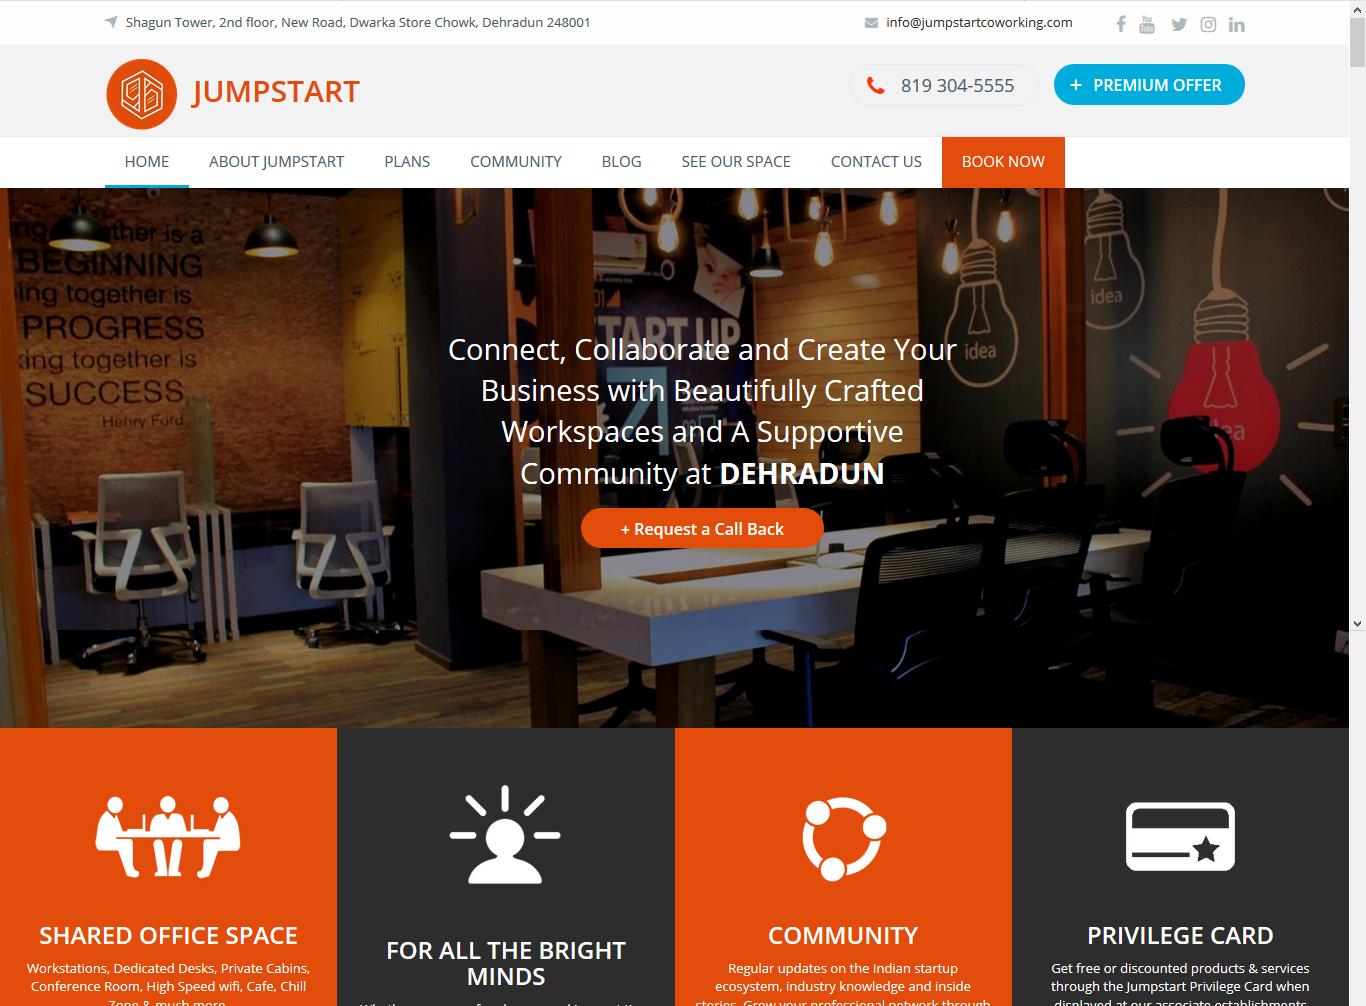 Website Designed for Jumpstart Coworking Space Dehradun